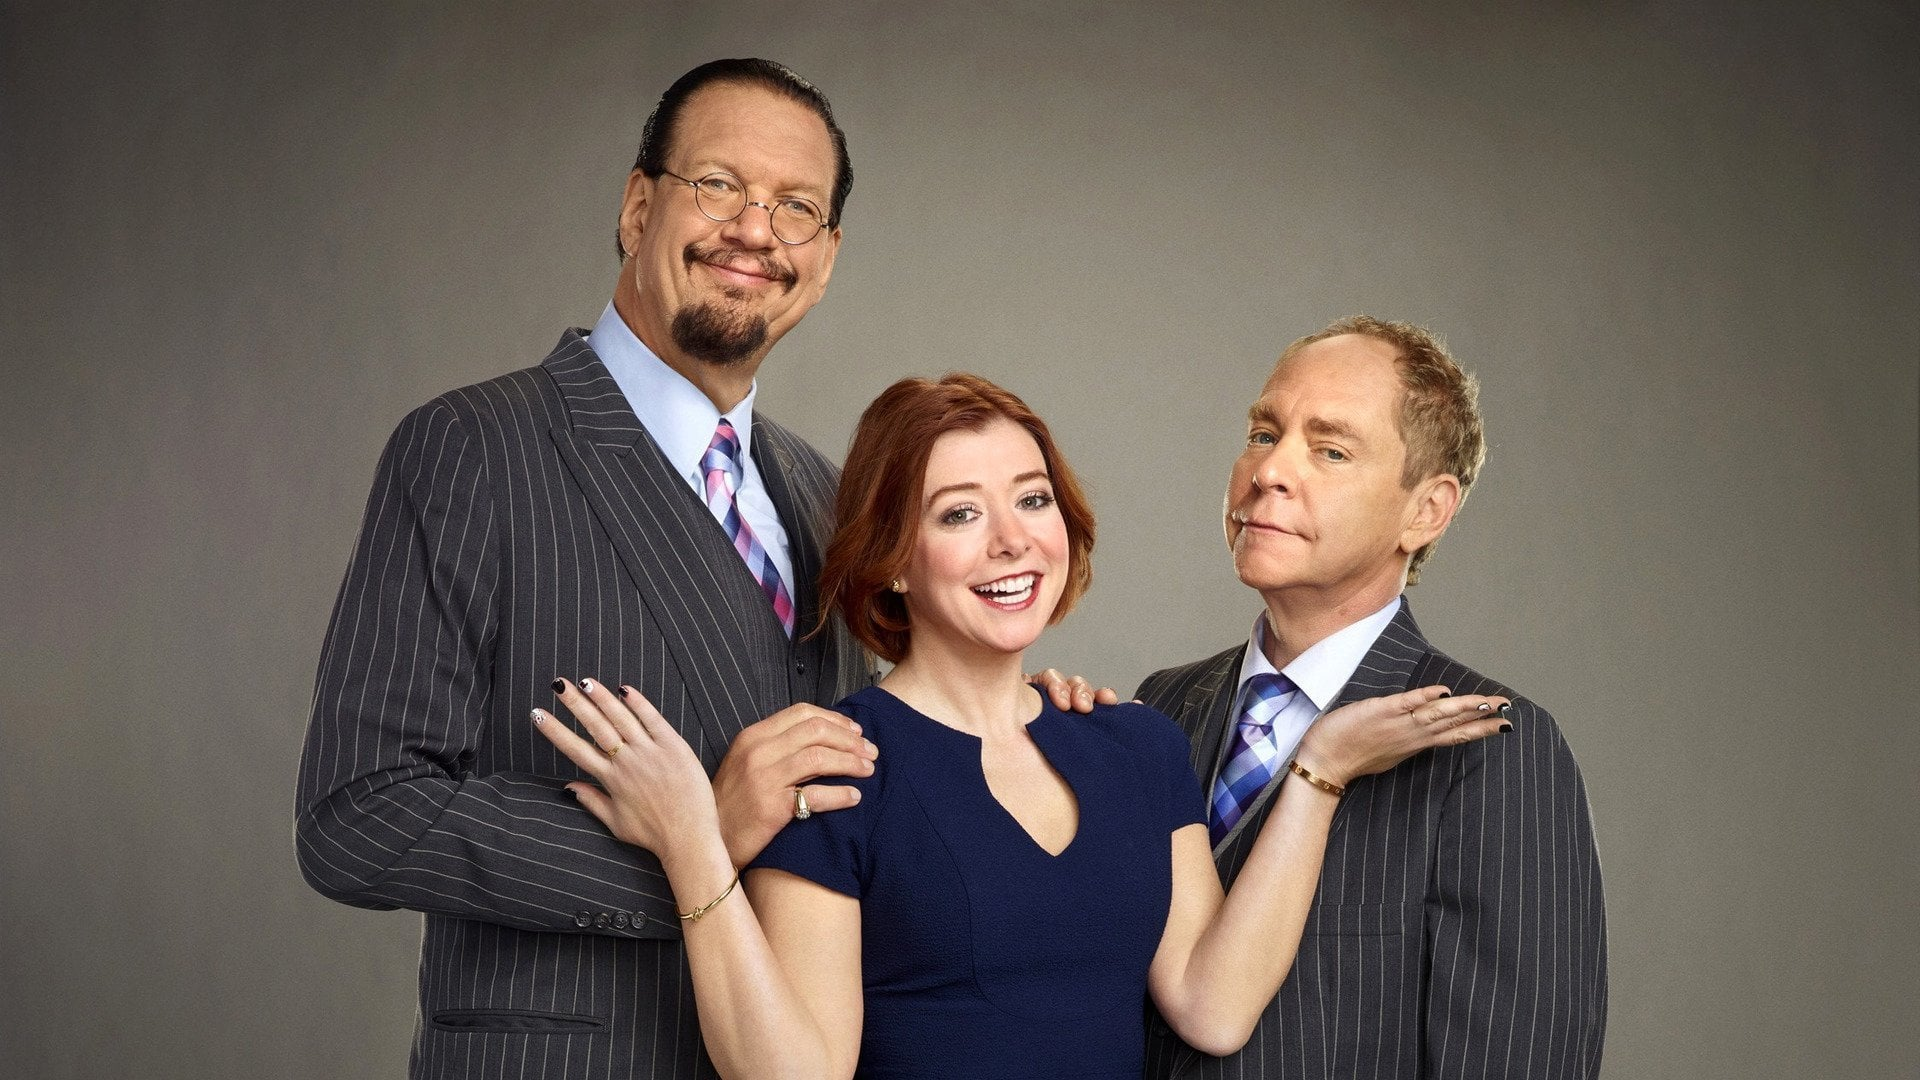 Penn & Teller: Fool Us - Season 6 Episode 13 : Virtual Reality